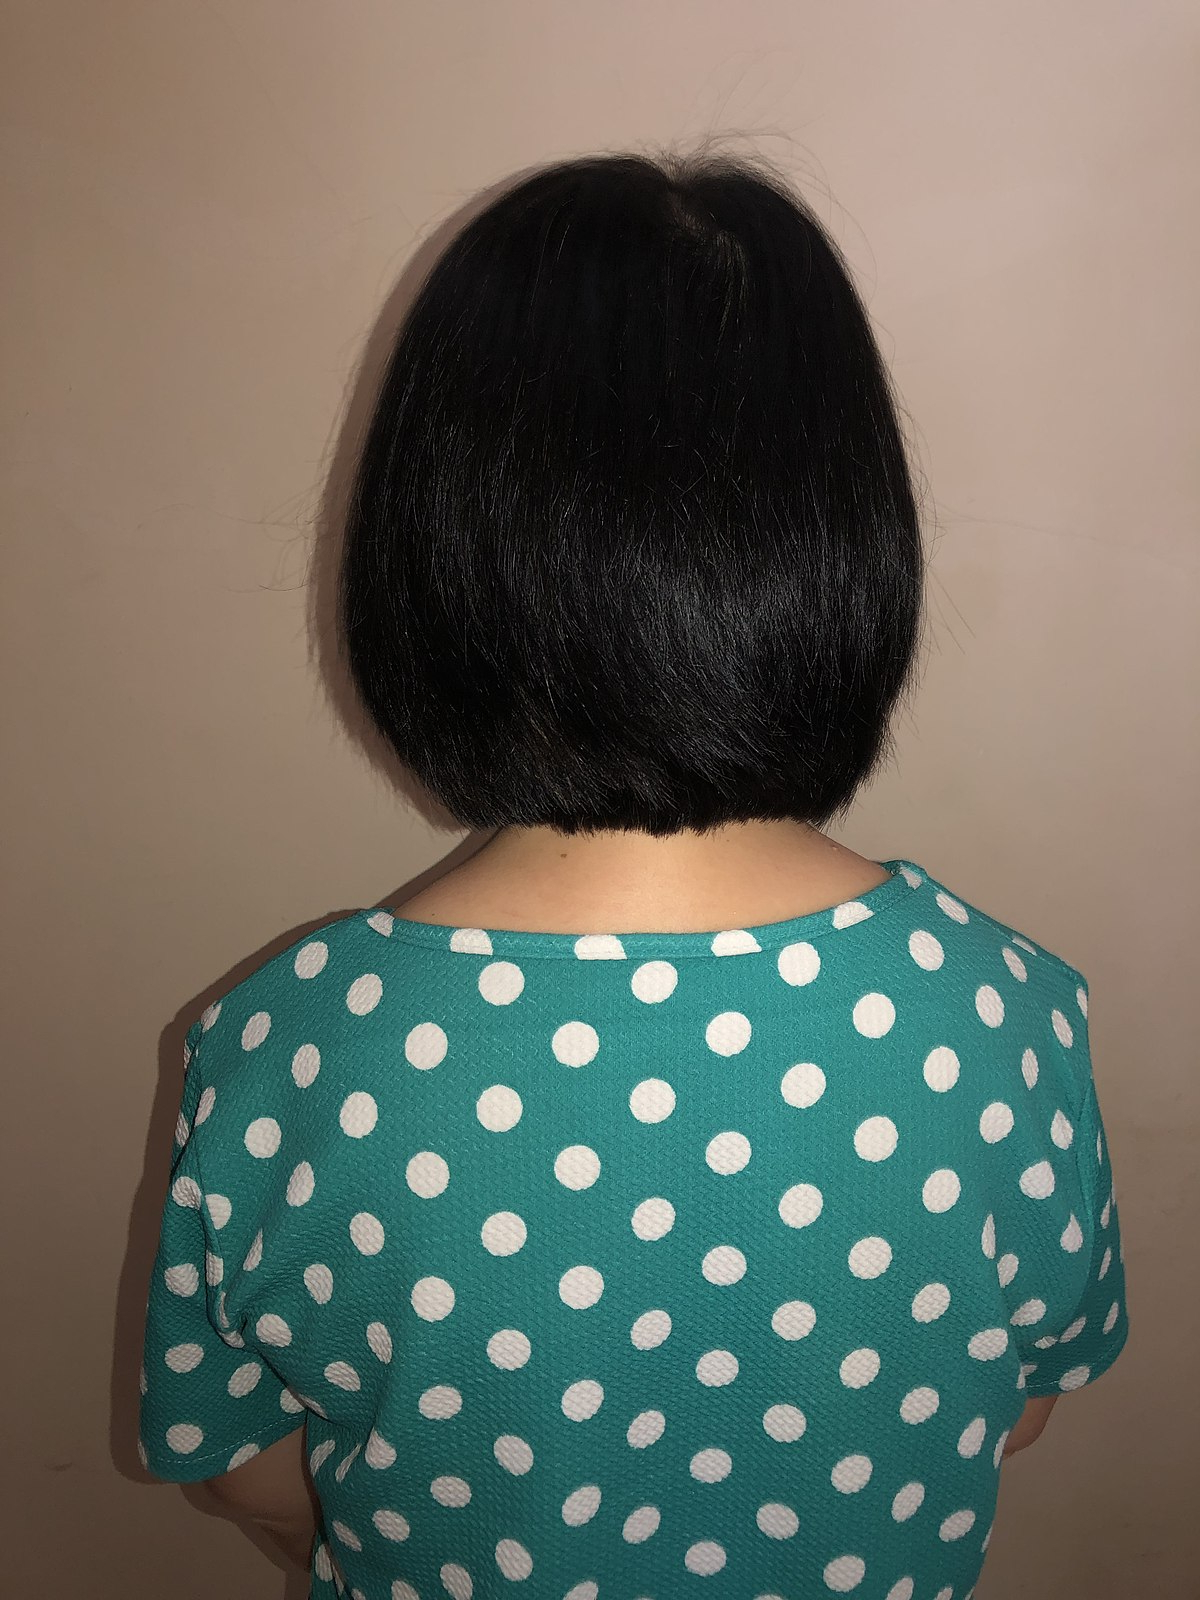 Bob Cut – Wikipedia For 2020 Cute A Line Bob Hairstyles With Volume Towards The Ends (View 17 of 20)